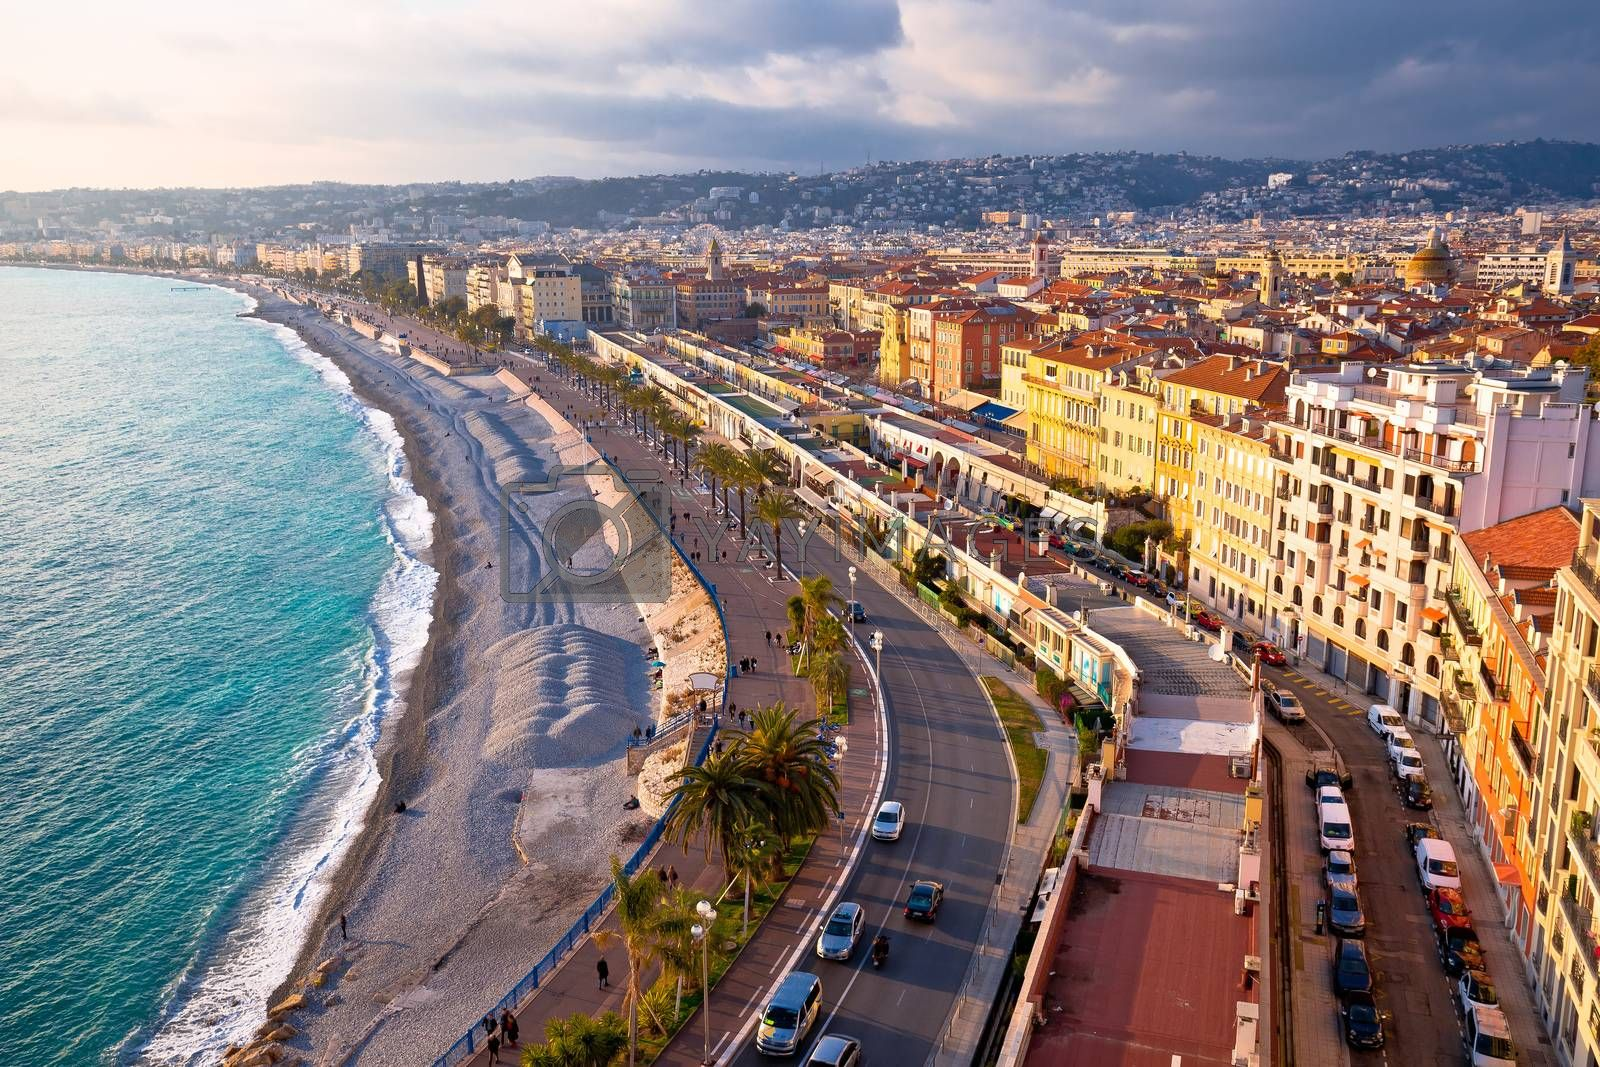 City of Nice Promenade des Anglais waterfront aerial view, French riviera, Alpes Maritimes department of France